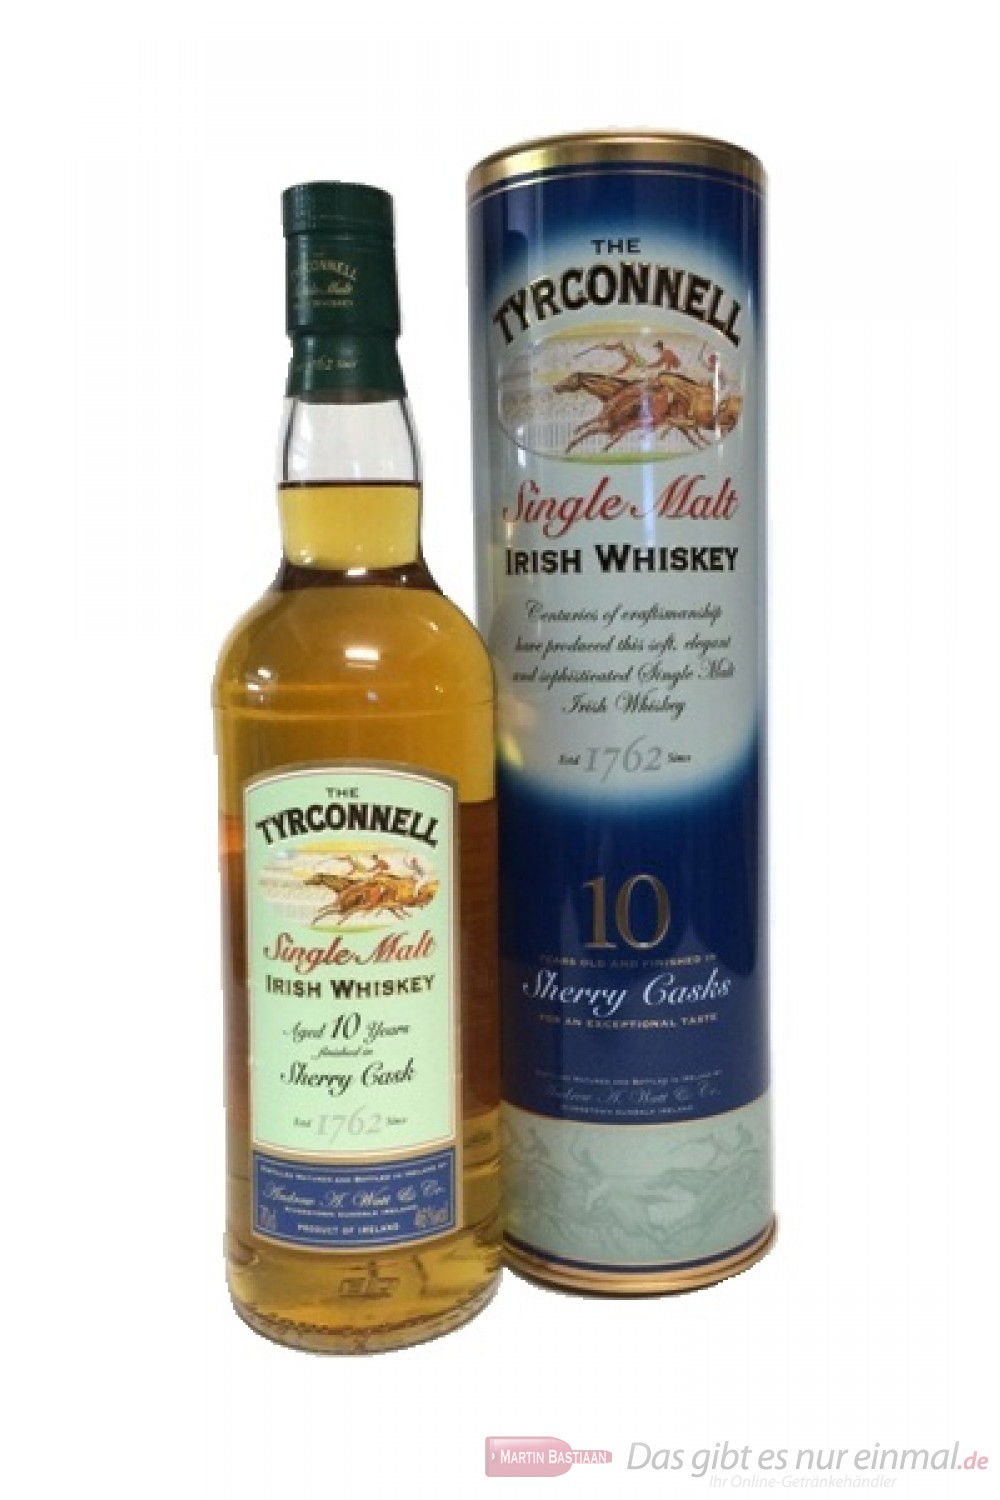 The Tyrconnell Sherry Cask